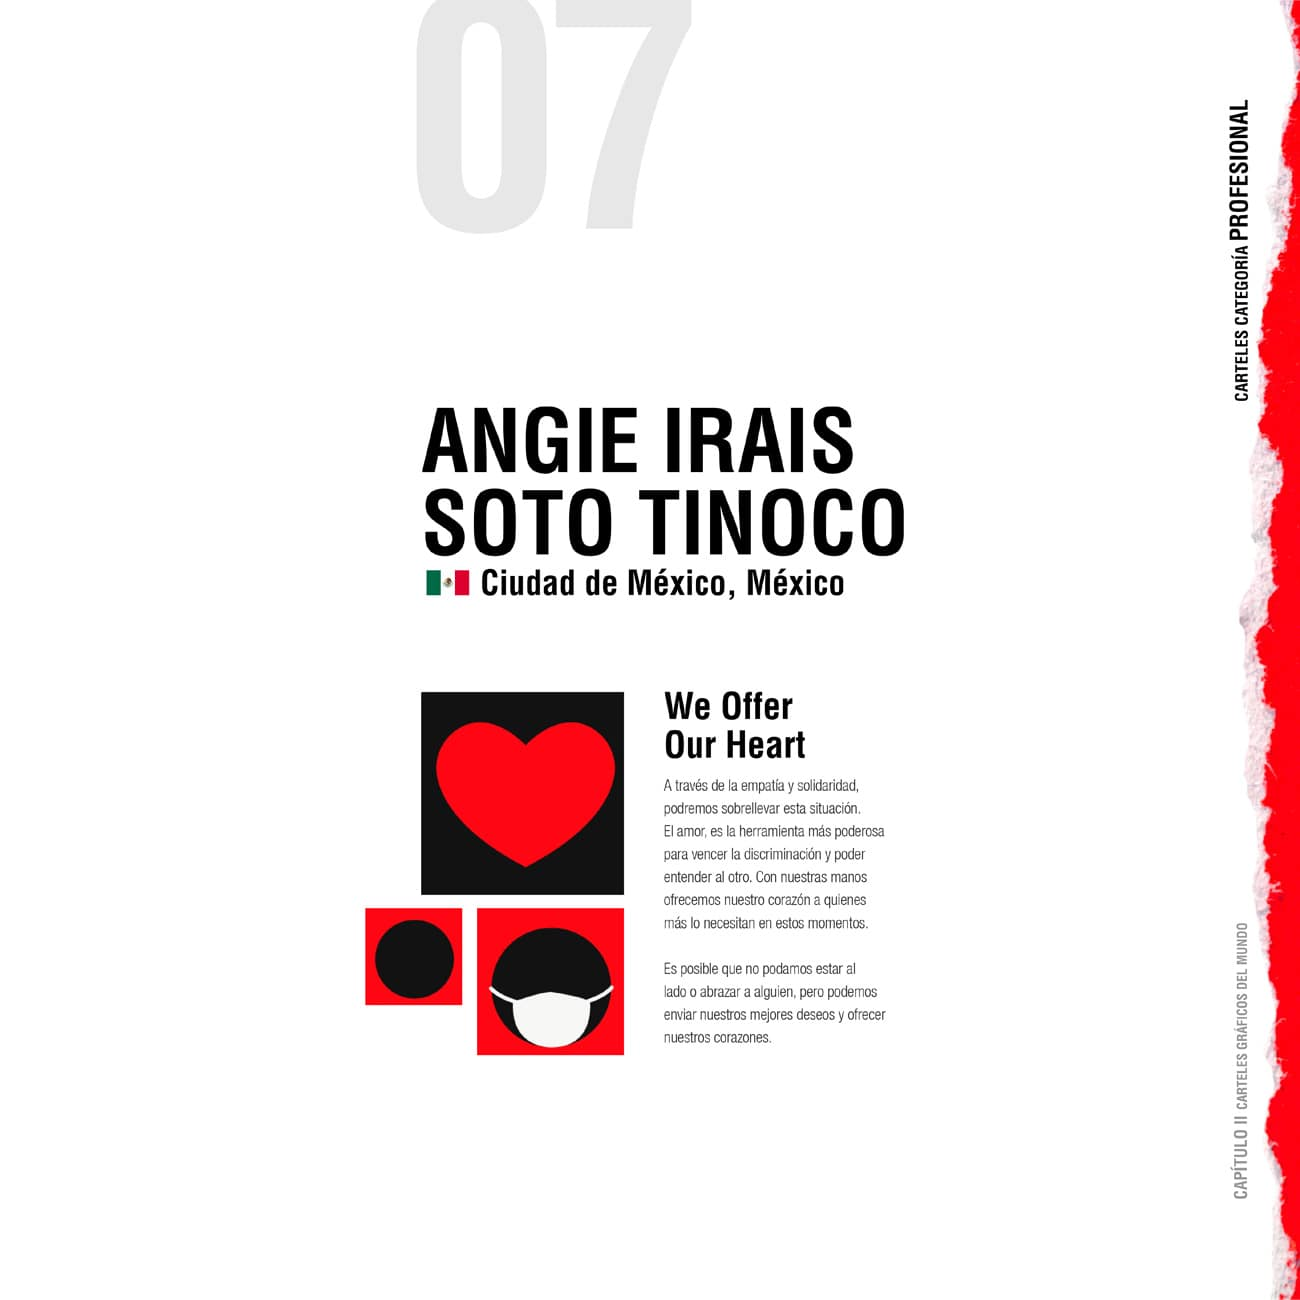 We offer our heart - International Poster ExhIbition by UN AIDS-07